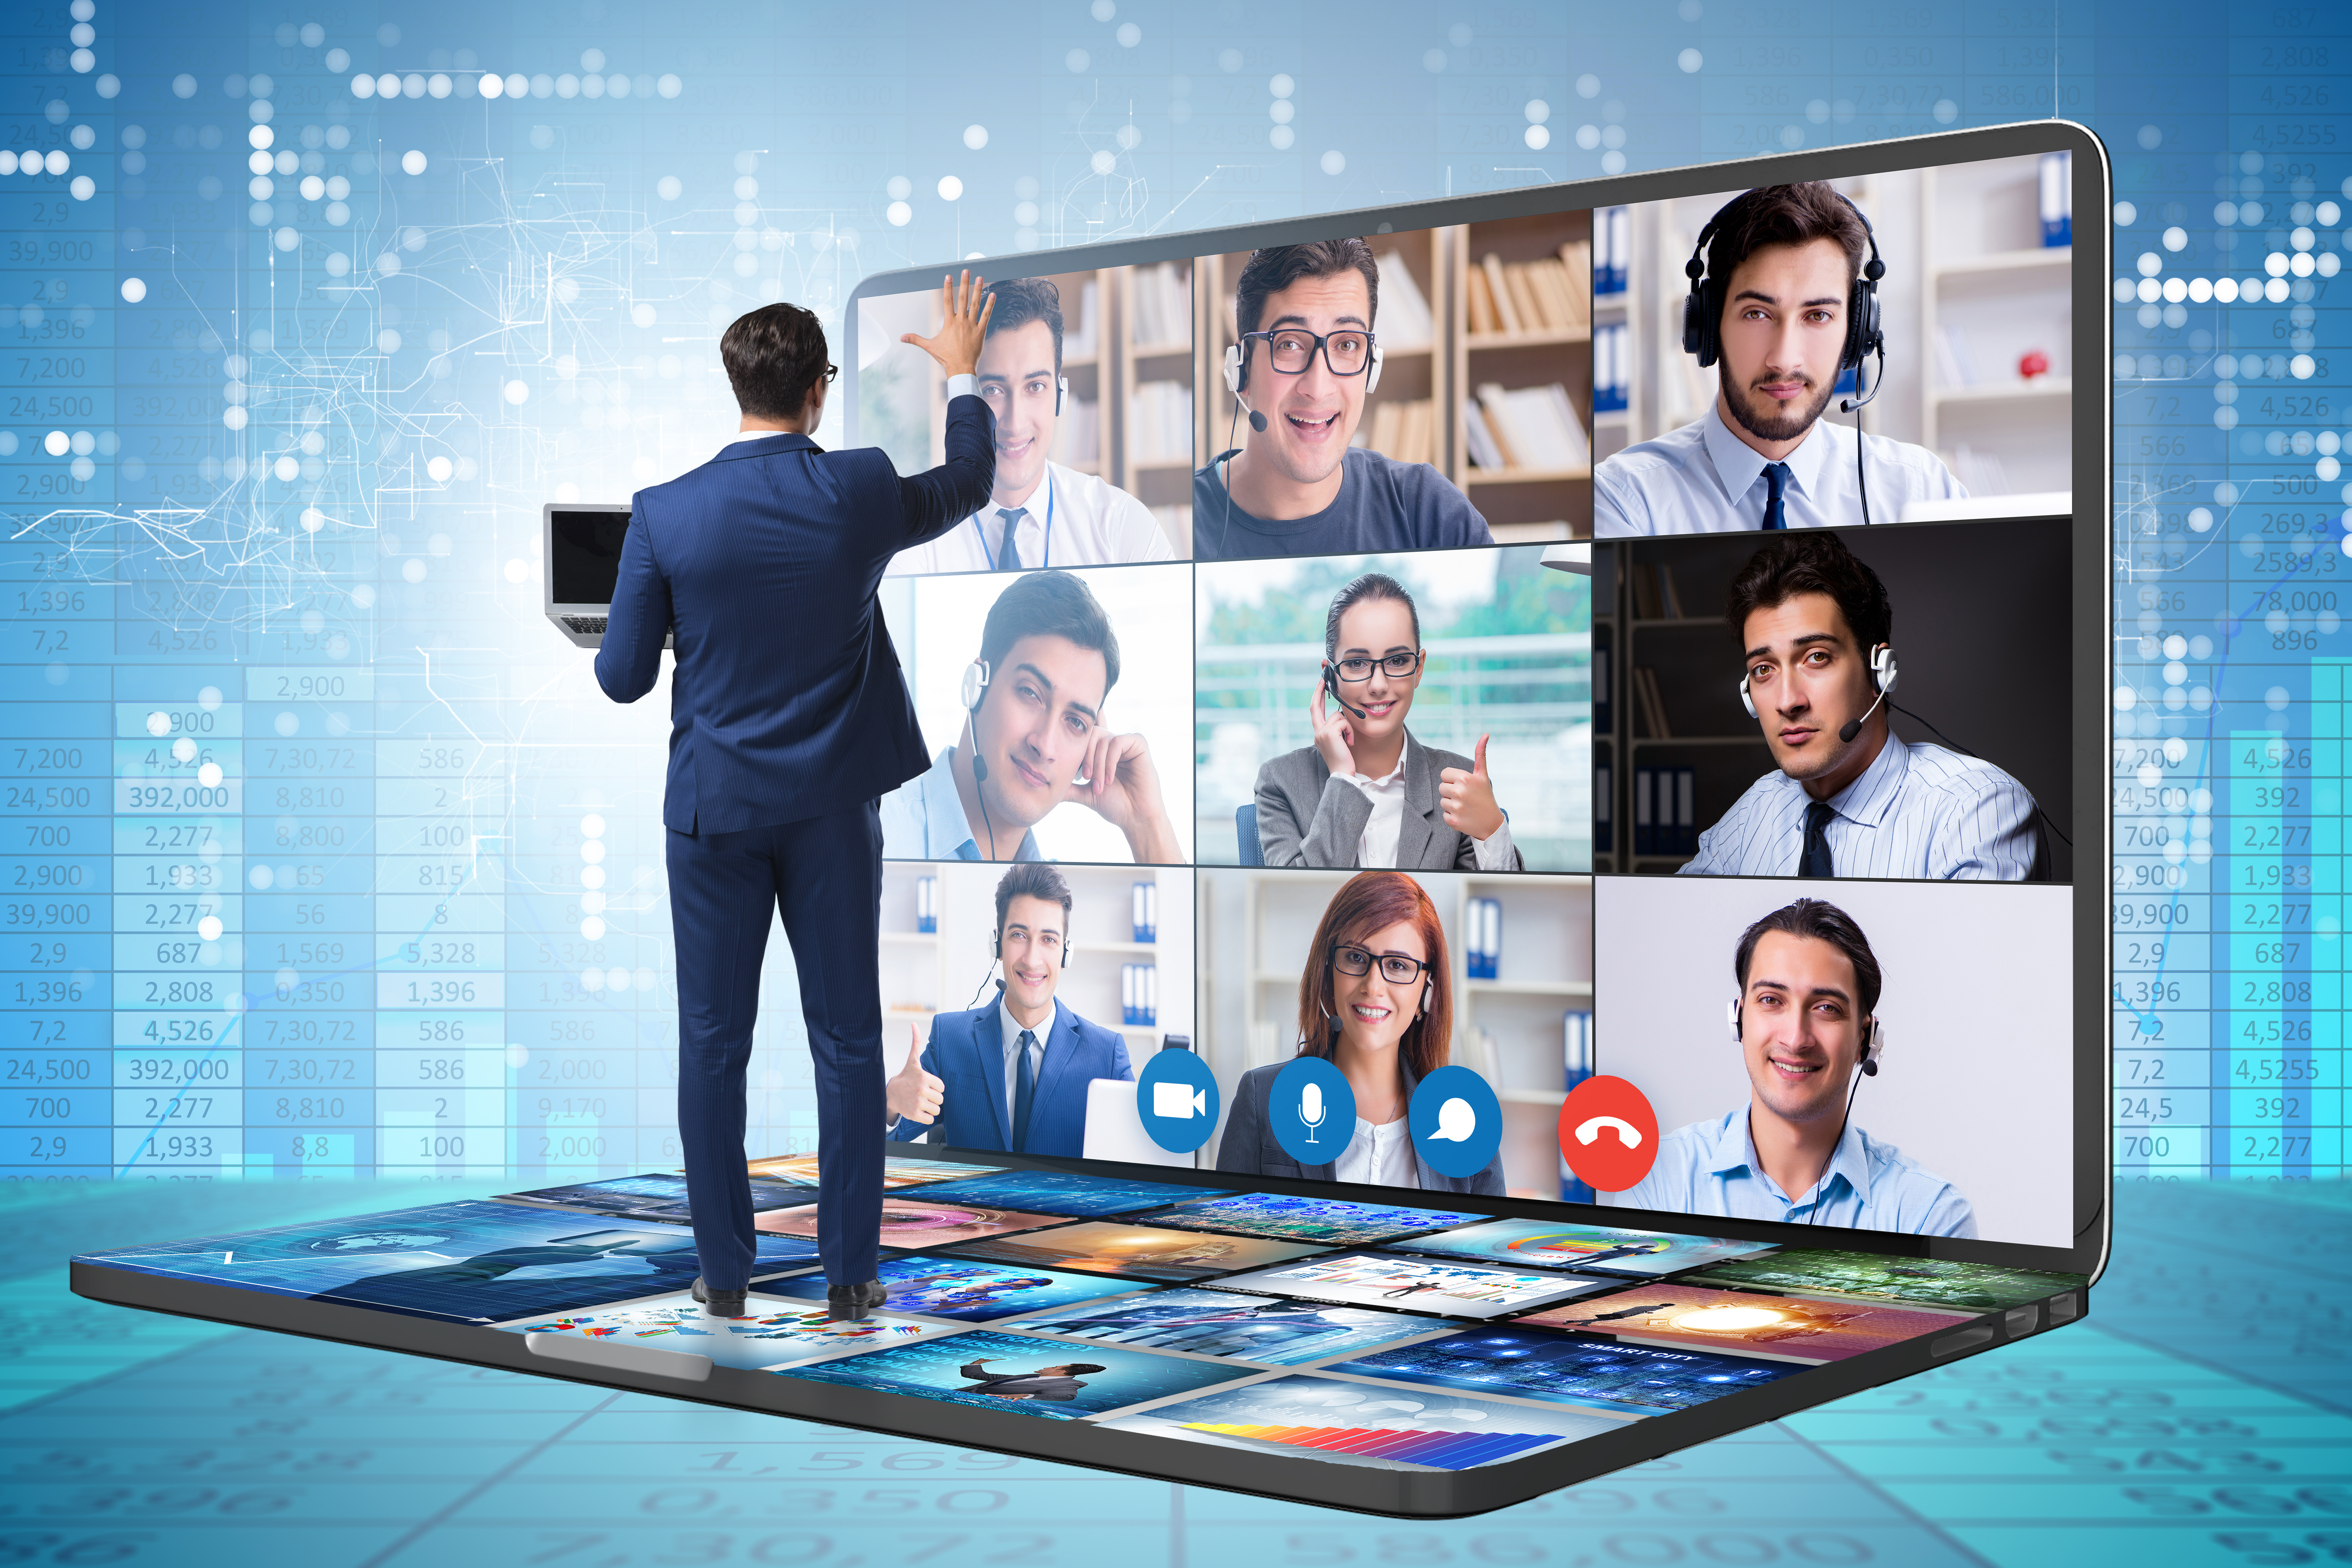 How to adapt your presentation style for the virtual world